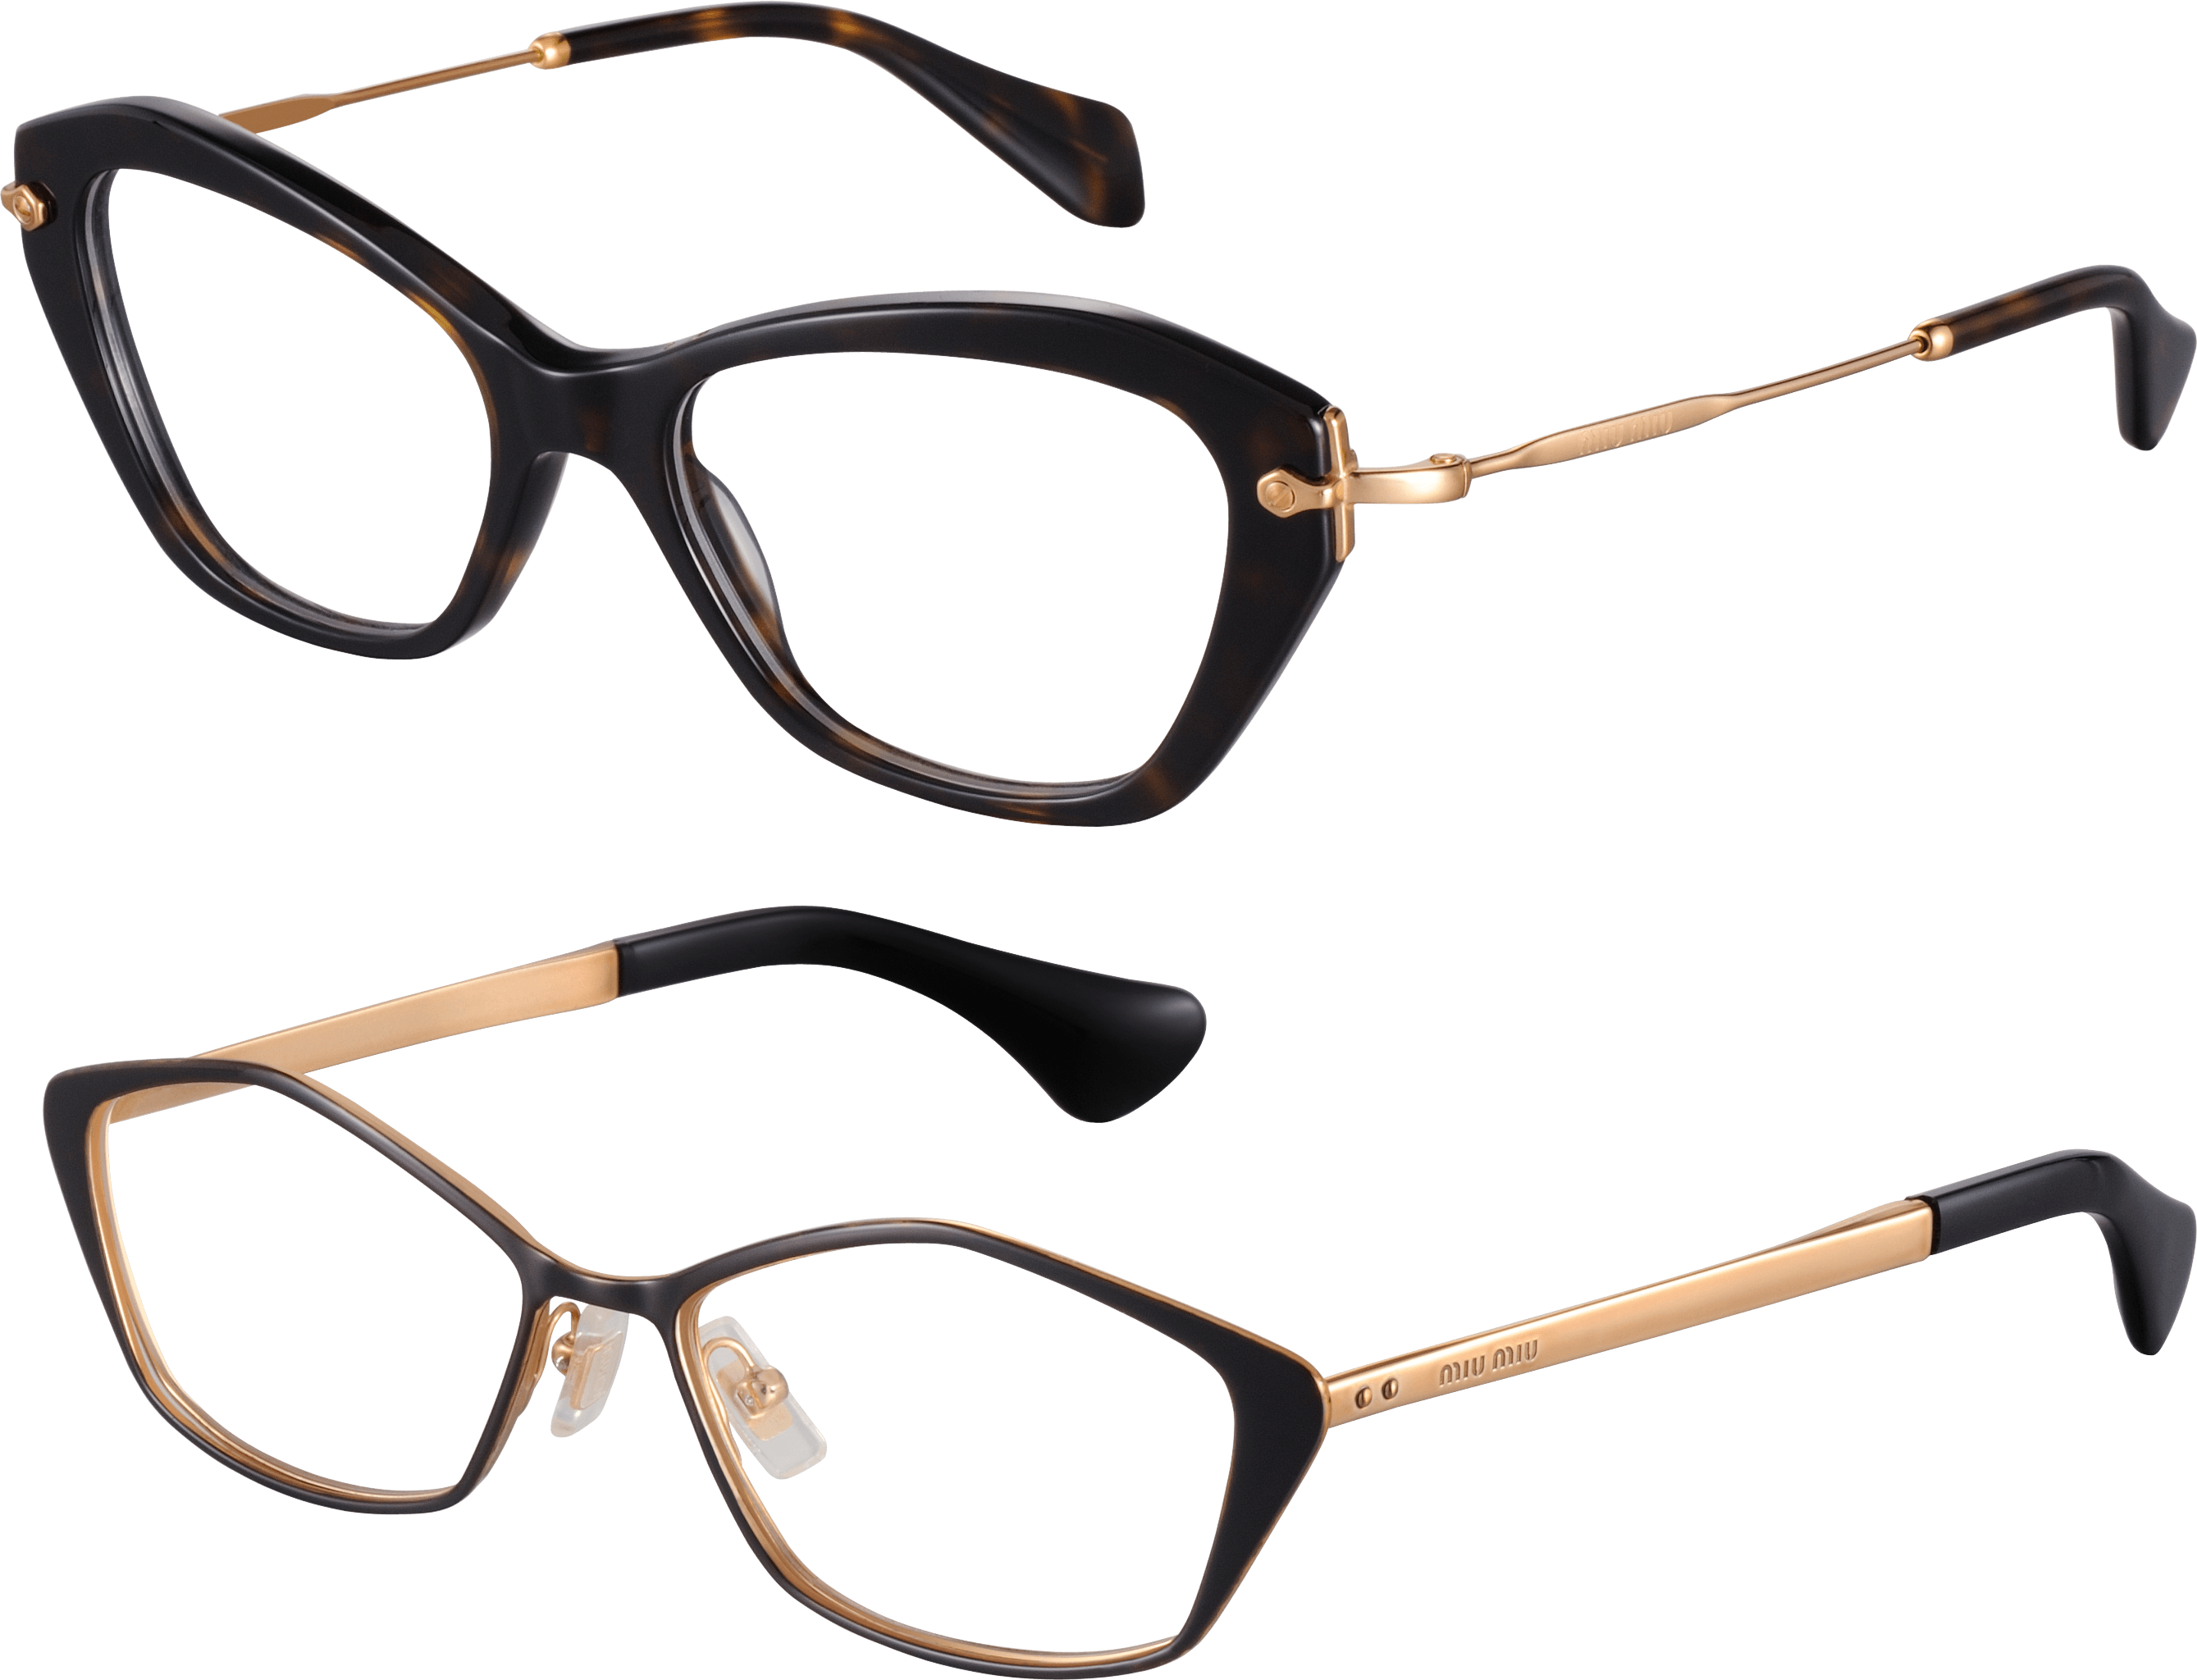 Glasses Png Image PNG Image